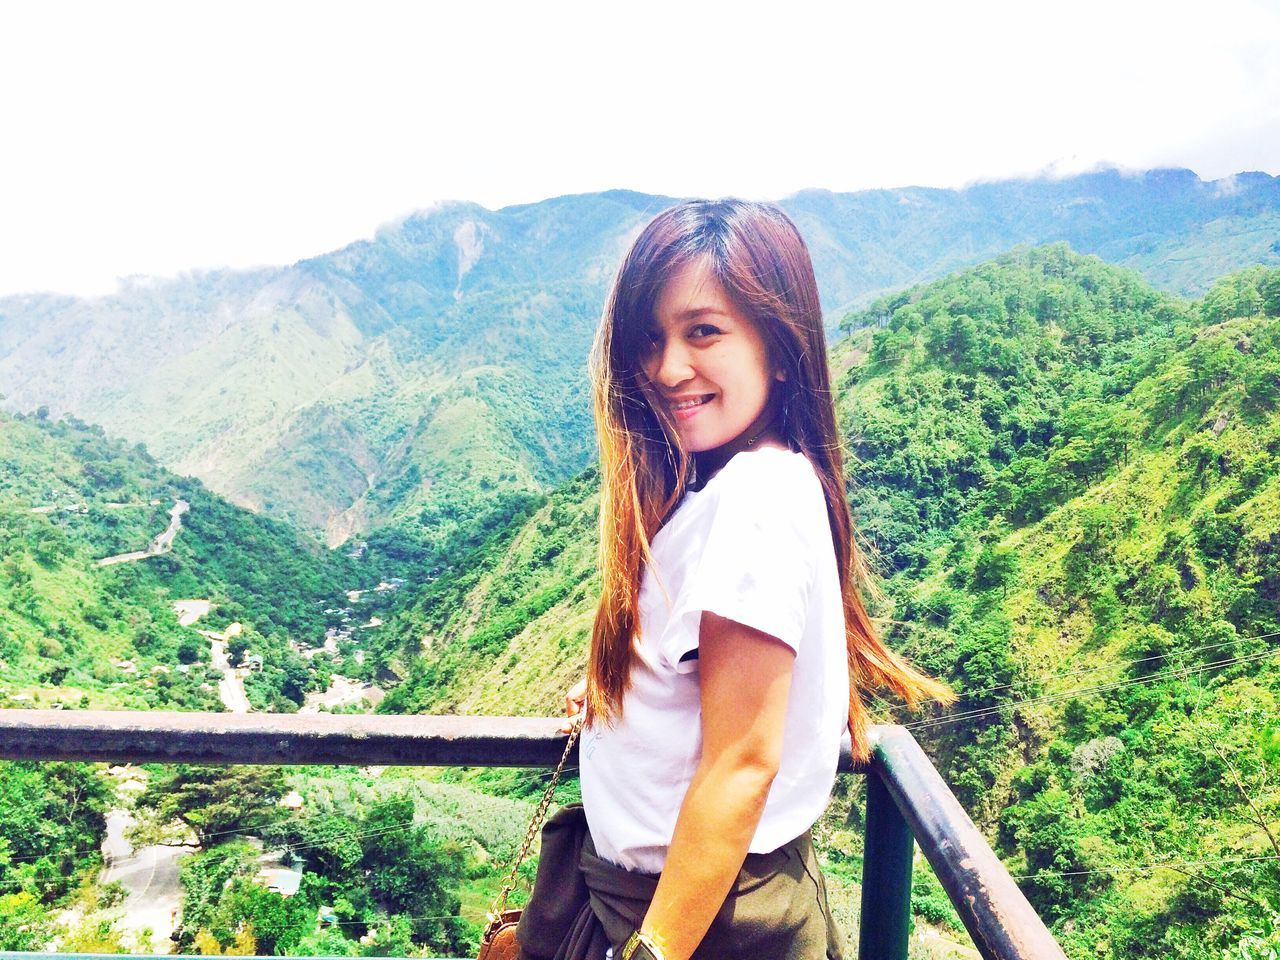 mountain, looking at camera, real people, one person, portrait, mountain range, nature, tree, casual clothing, standing, leisure activity, beauty in nature, smiling, day, scenics, lifestyles, landscape, young adult, happiness, outdoors, young women, medium-length hair, forest, sky